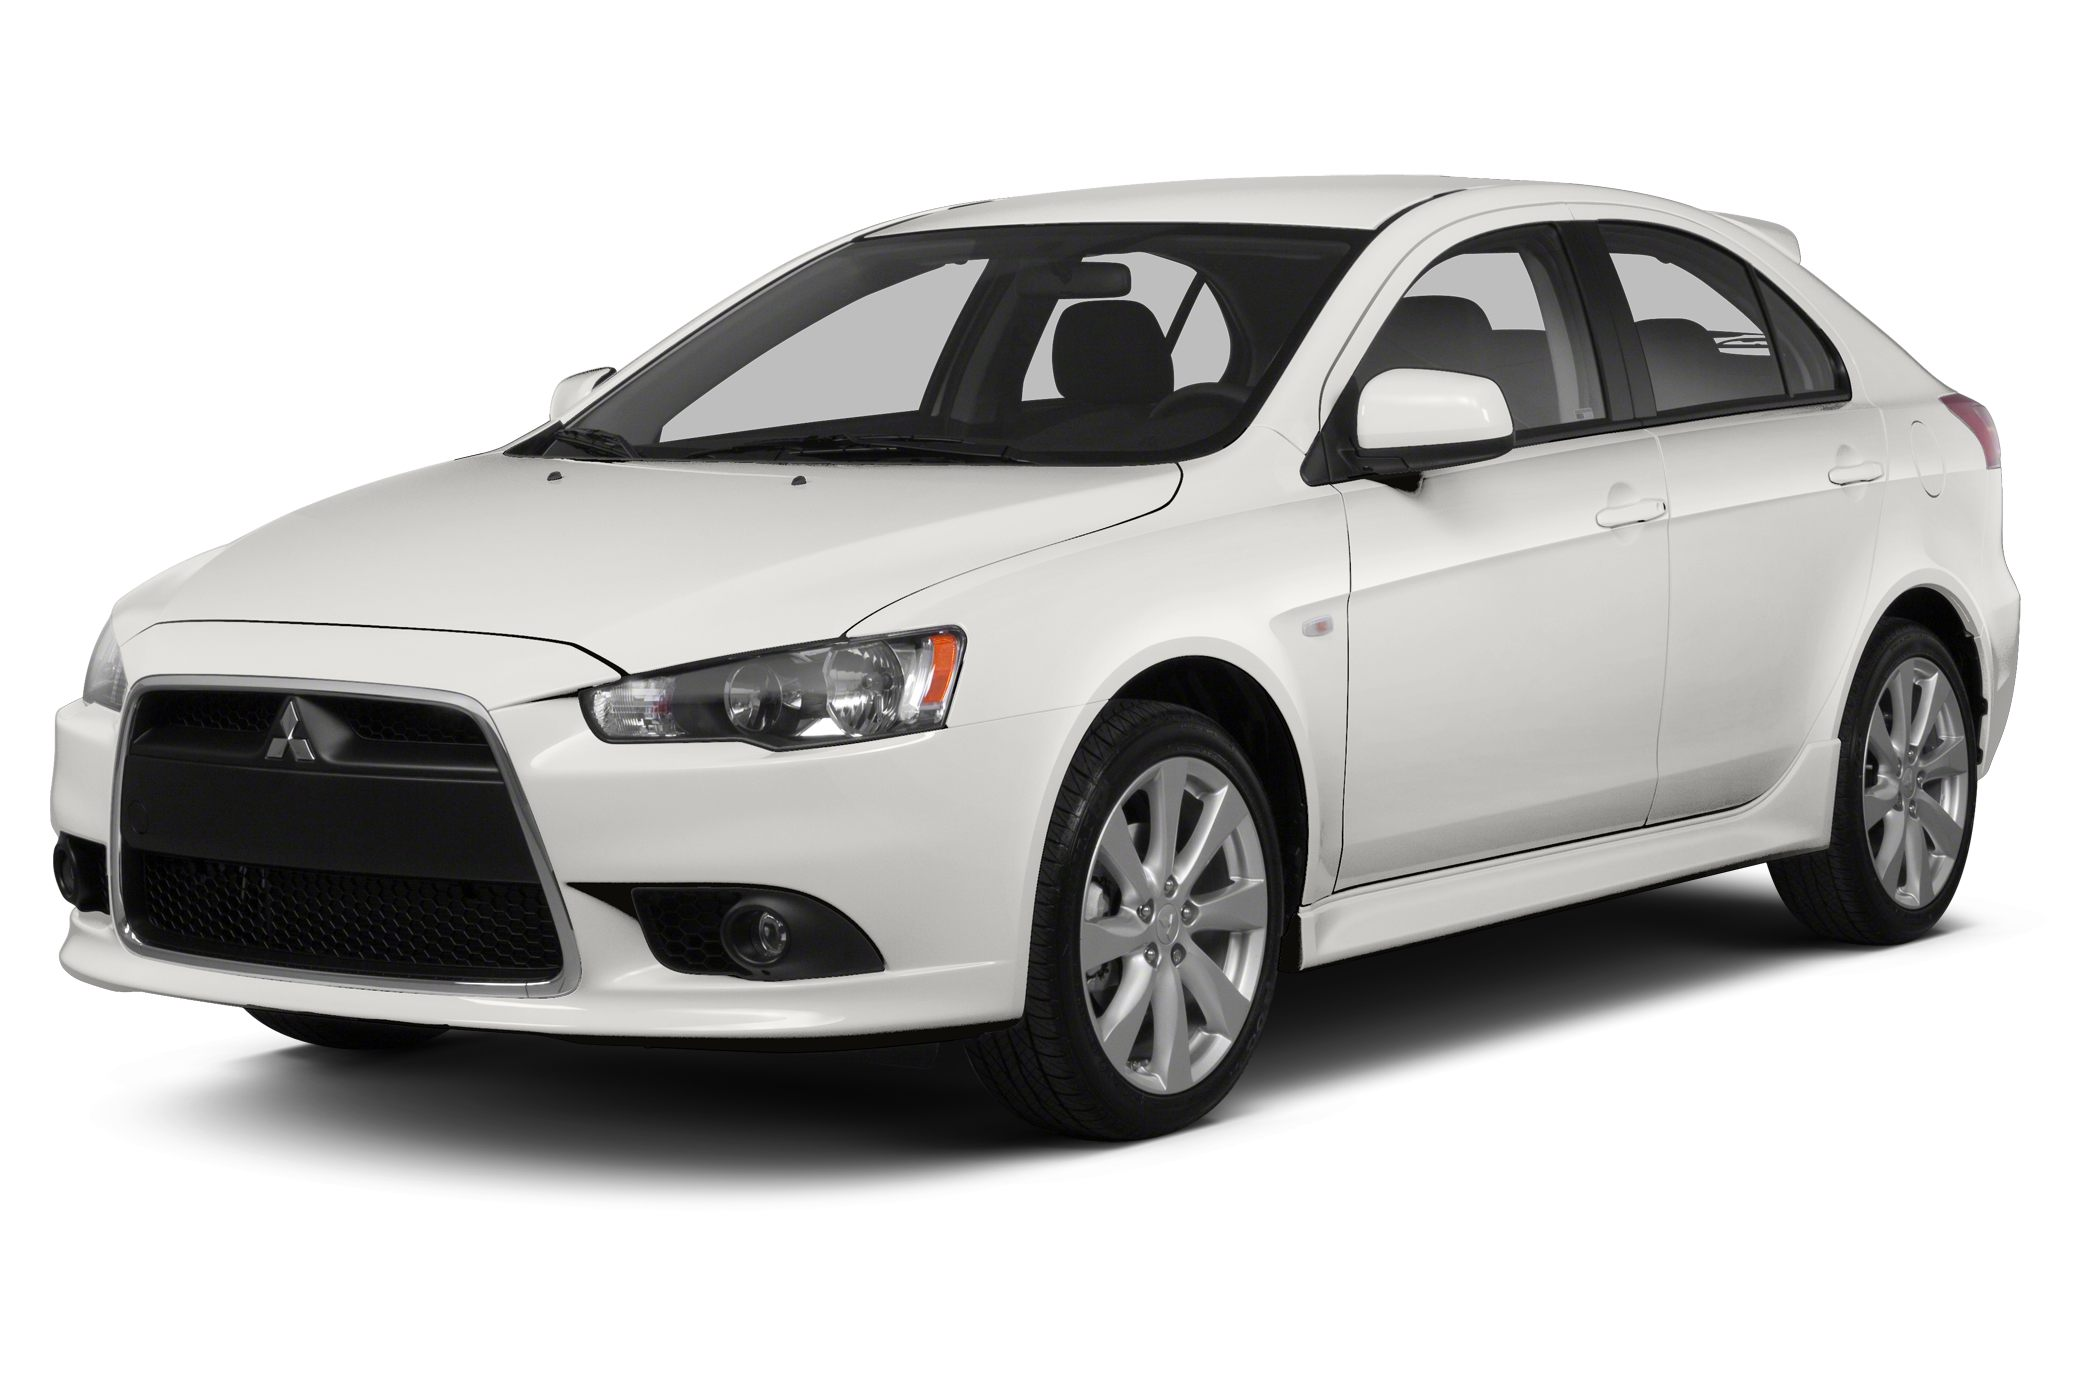 2013 Mitsubishi Lancer Sportback GT Hatchback for sale in New York for $15,995 with 6,821 miles